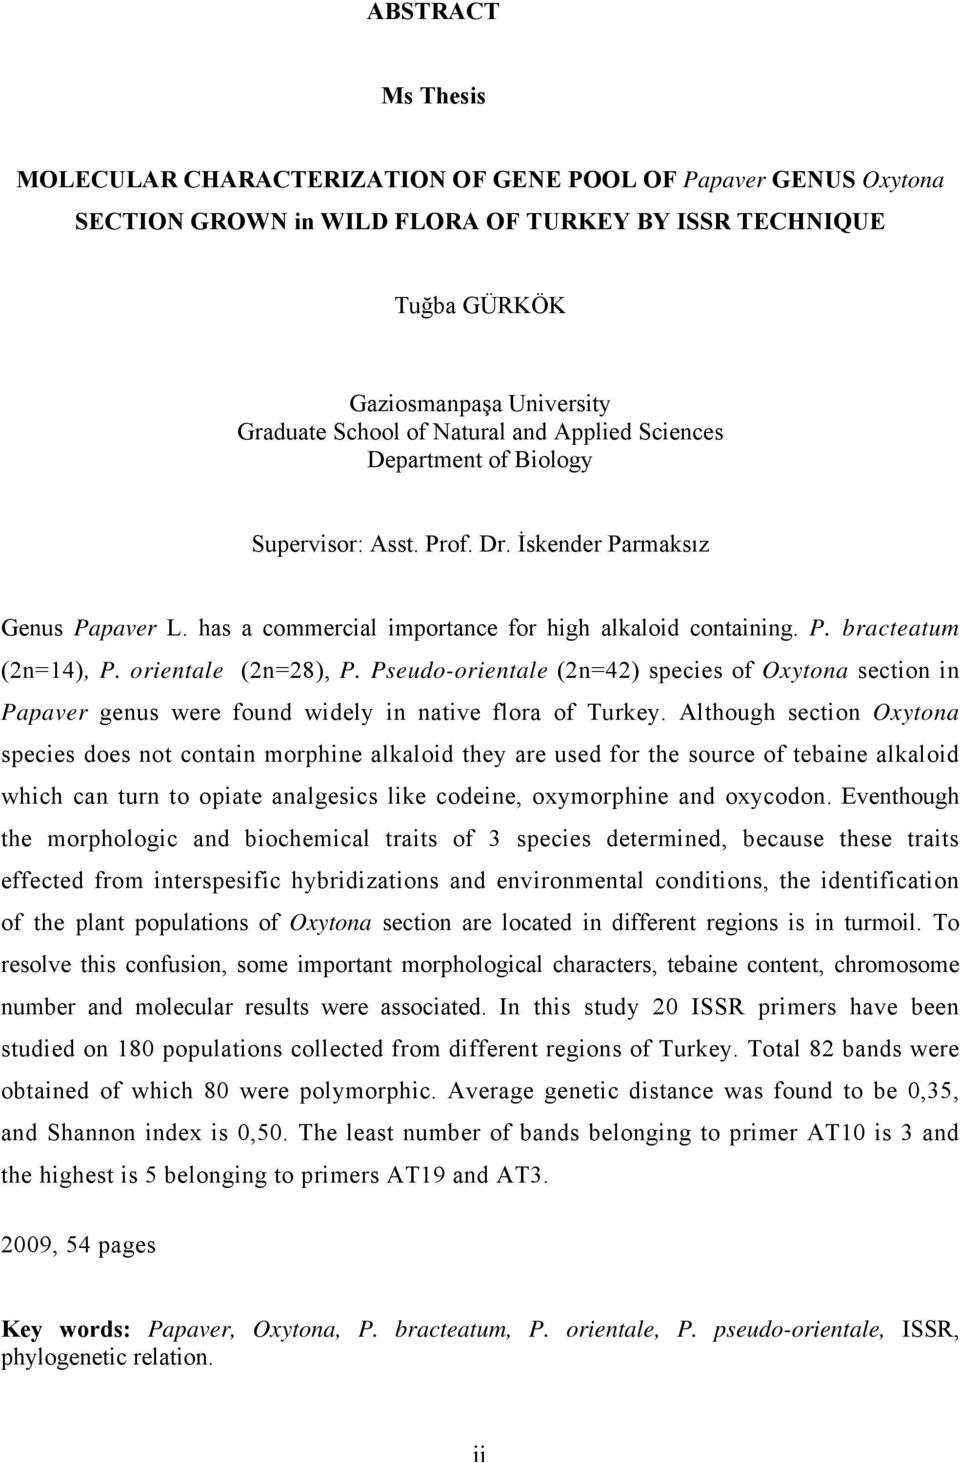 orientale (2n=28), P. Pseudo-orientale (2n=42) species of Oxytona section in Papaver genus were found widely in native flora of Turkey.